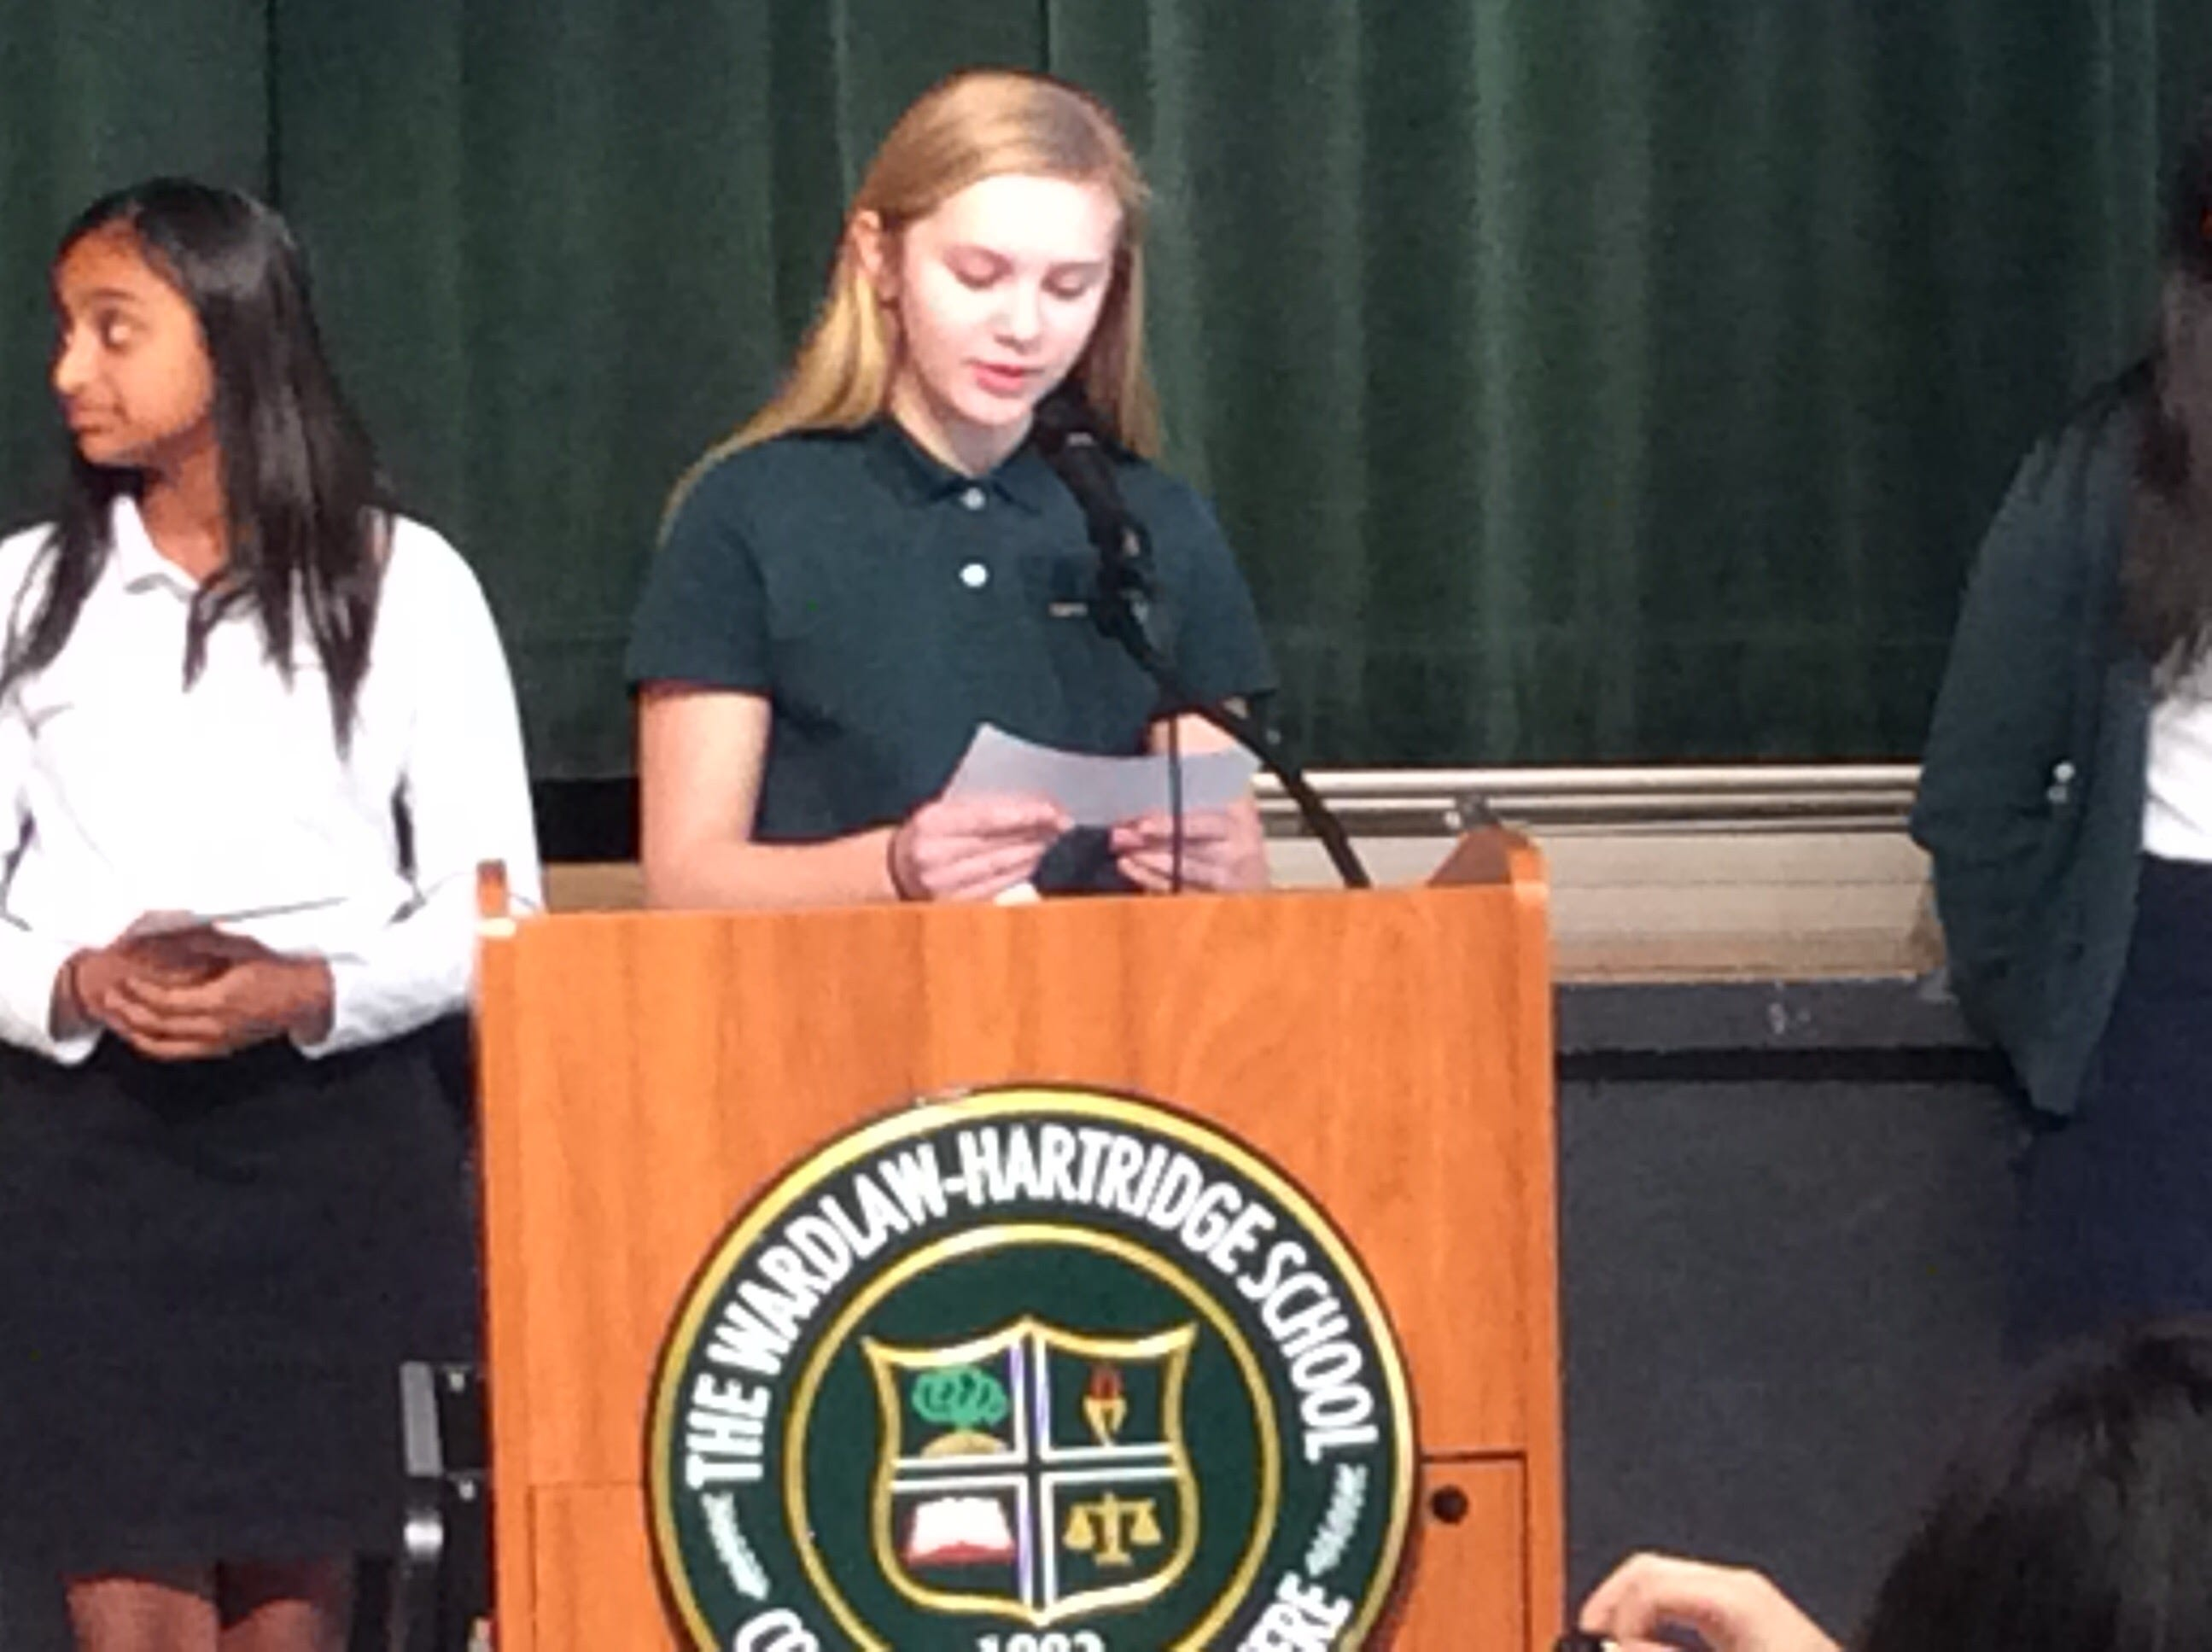 Sydney Geissler of Metuchen leads the discussion at the tribute to Martin Luther King, Jr.